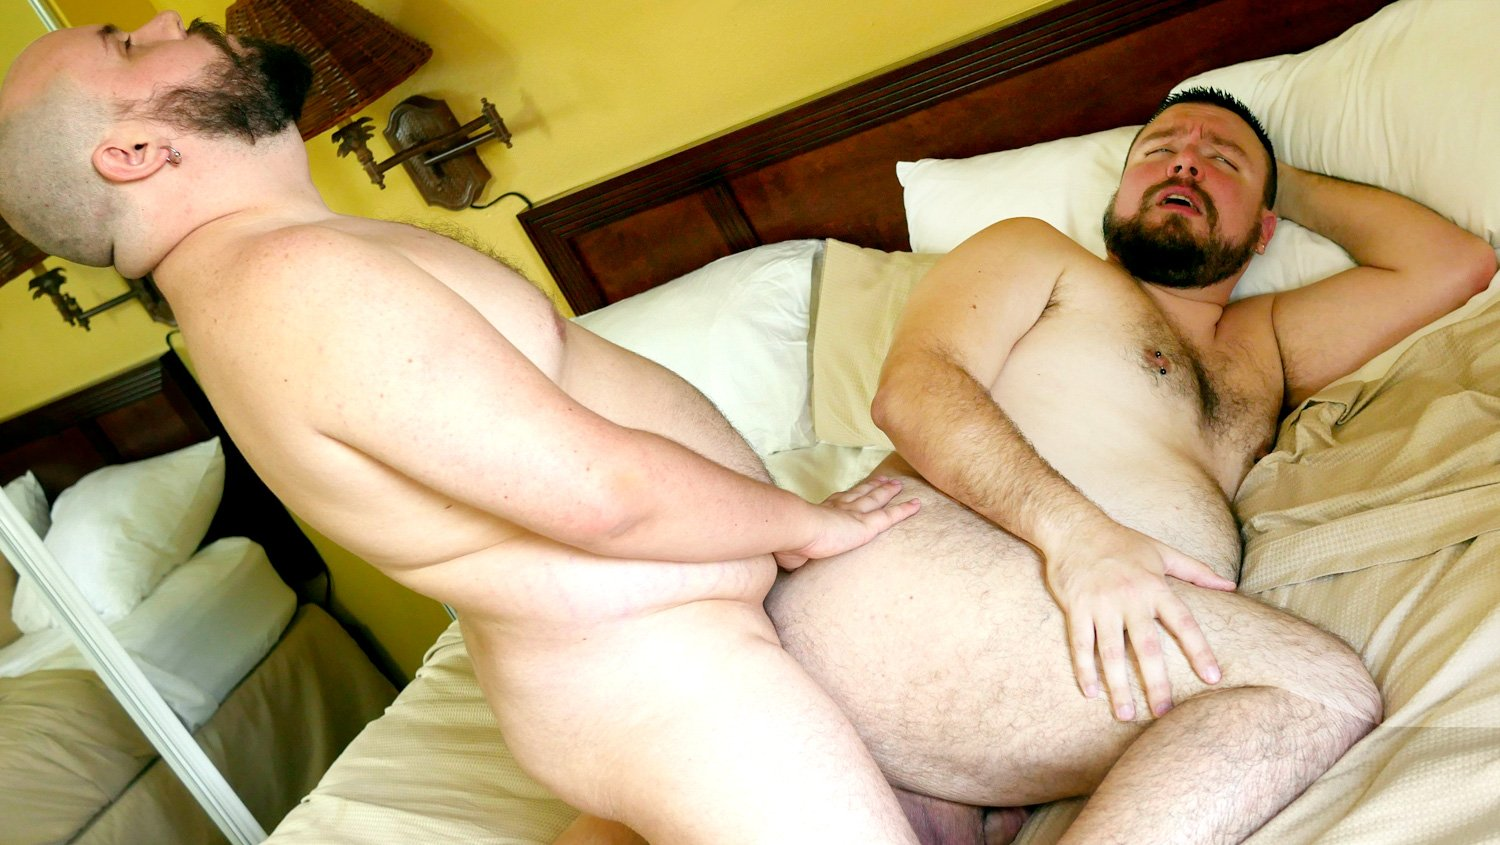 Sex Mature Huge Fat Gay Chubby Guys Porn, Man Galery